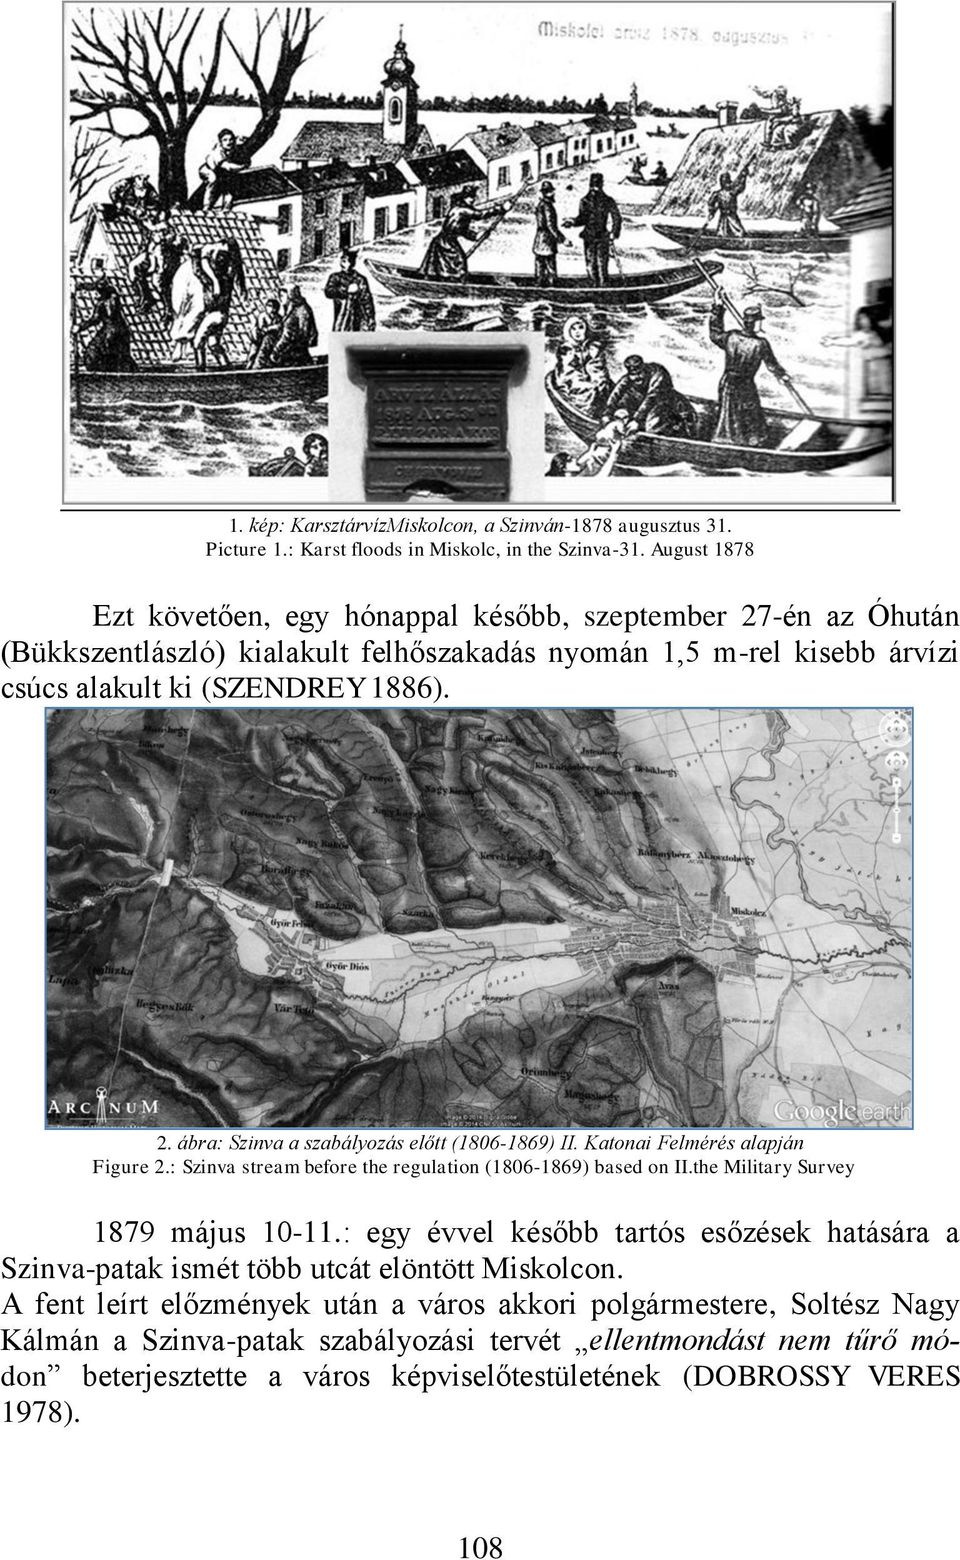 Katonai Felmérés alapján Figure 2.: Szinva stream before the regulation (1806-1869) based on II.the Military Survey 1879 május 10-11.